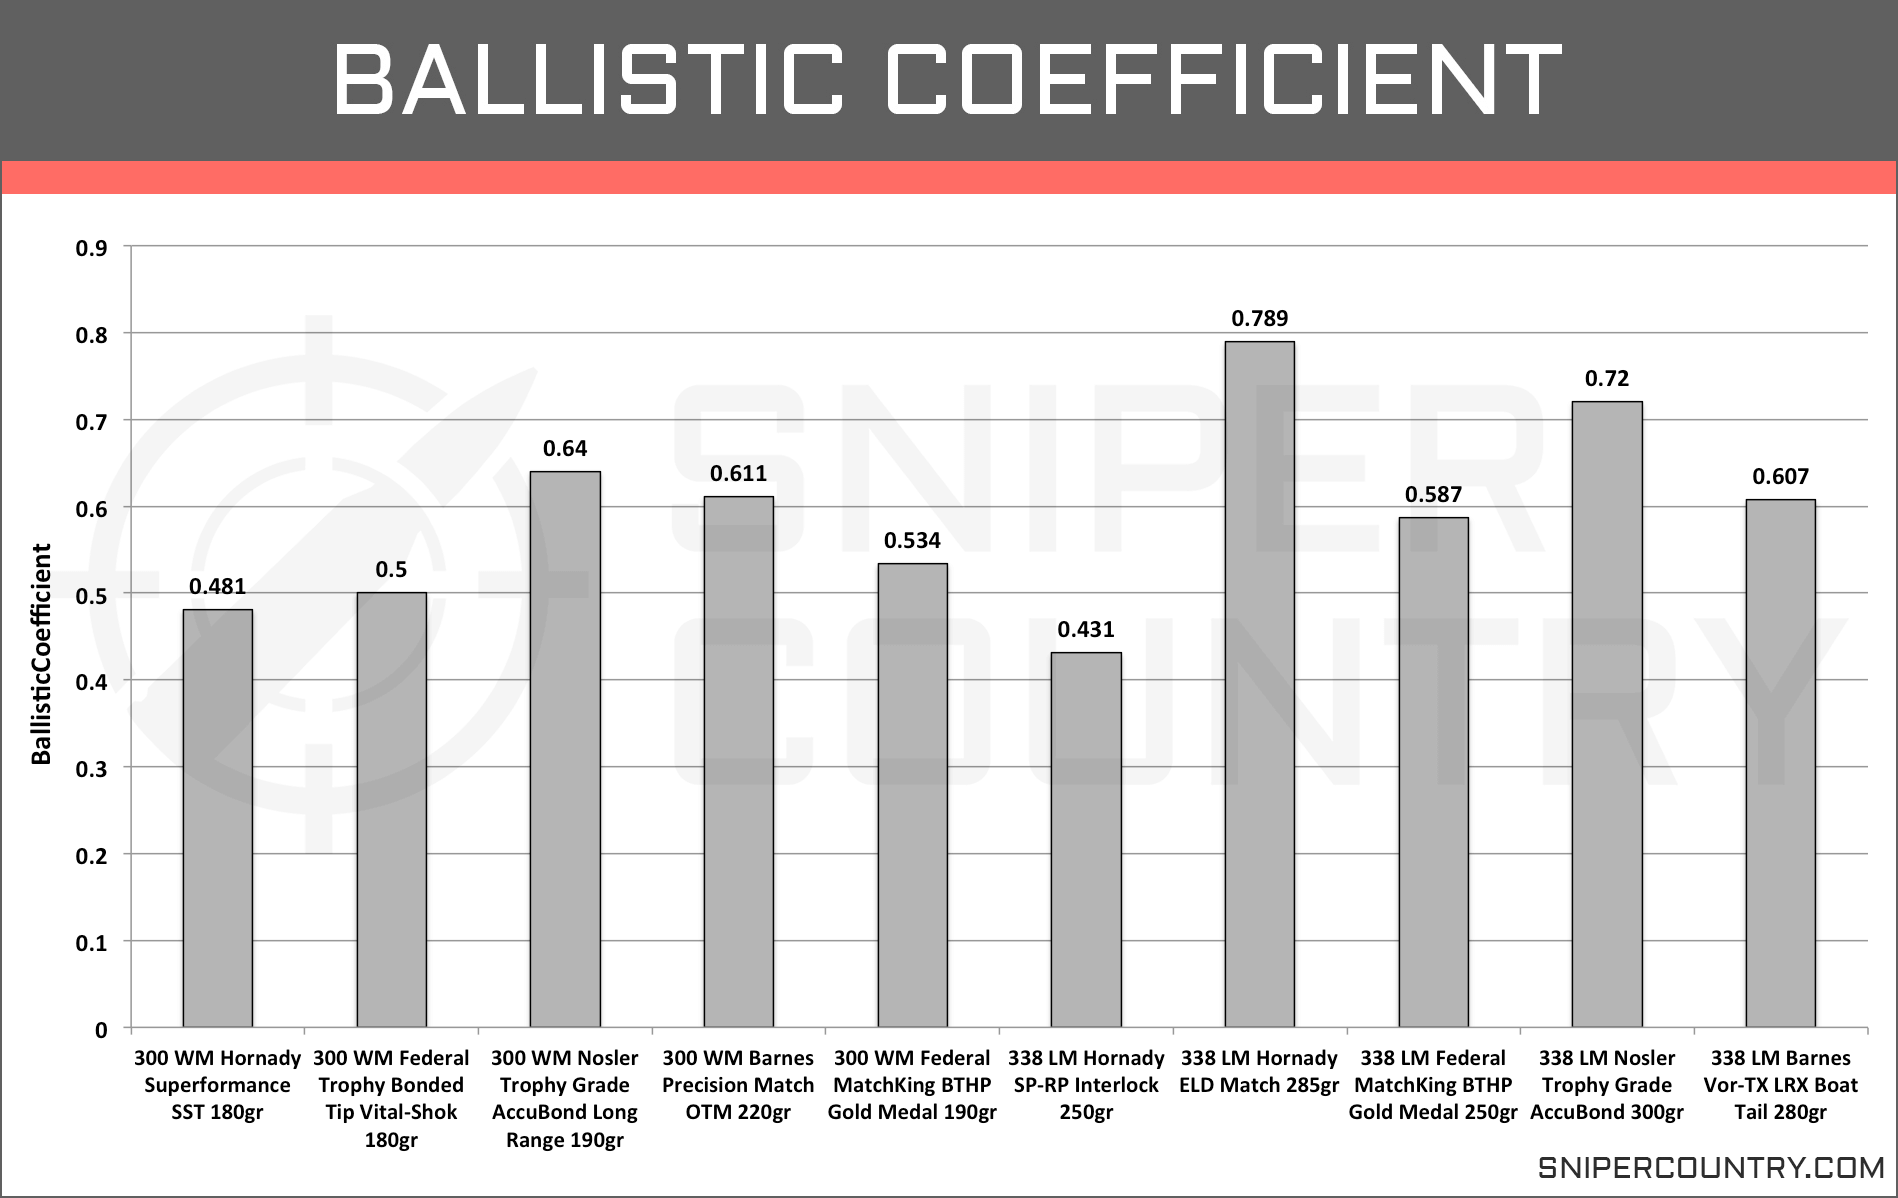 Ballistic Coefficient .300 Win Mag vs .338 Lapua Mag